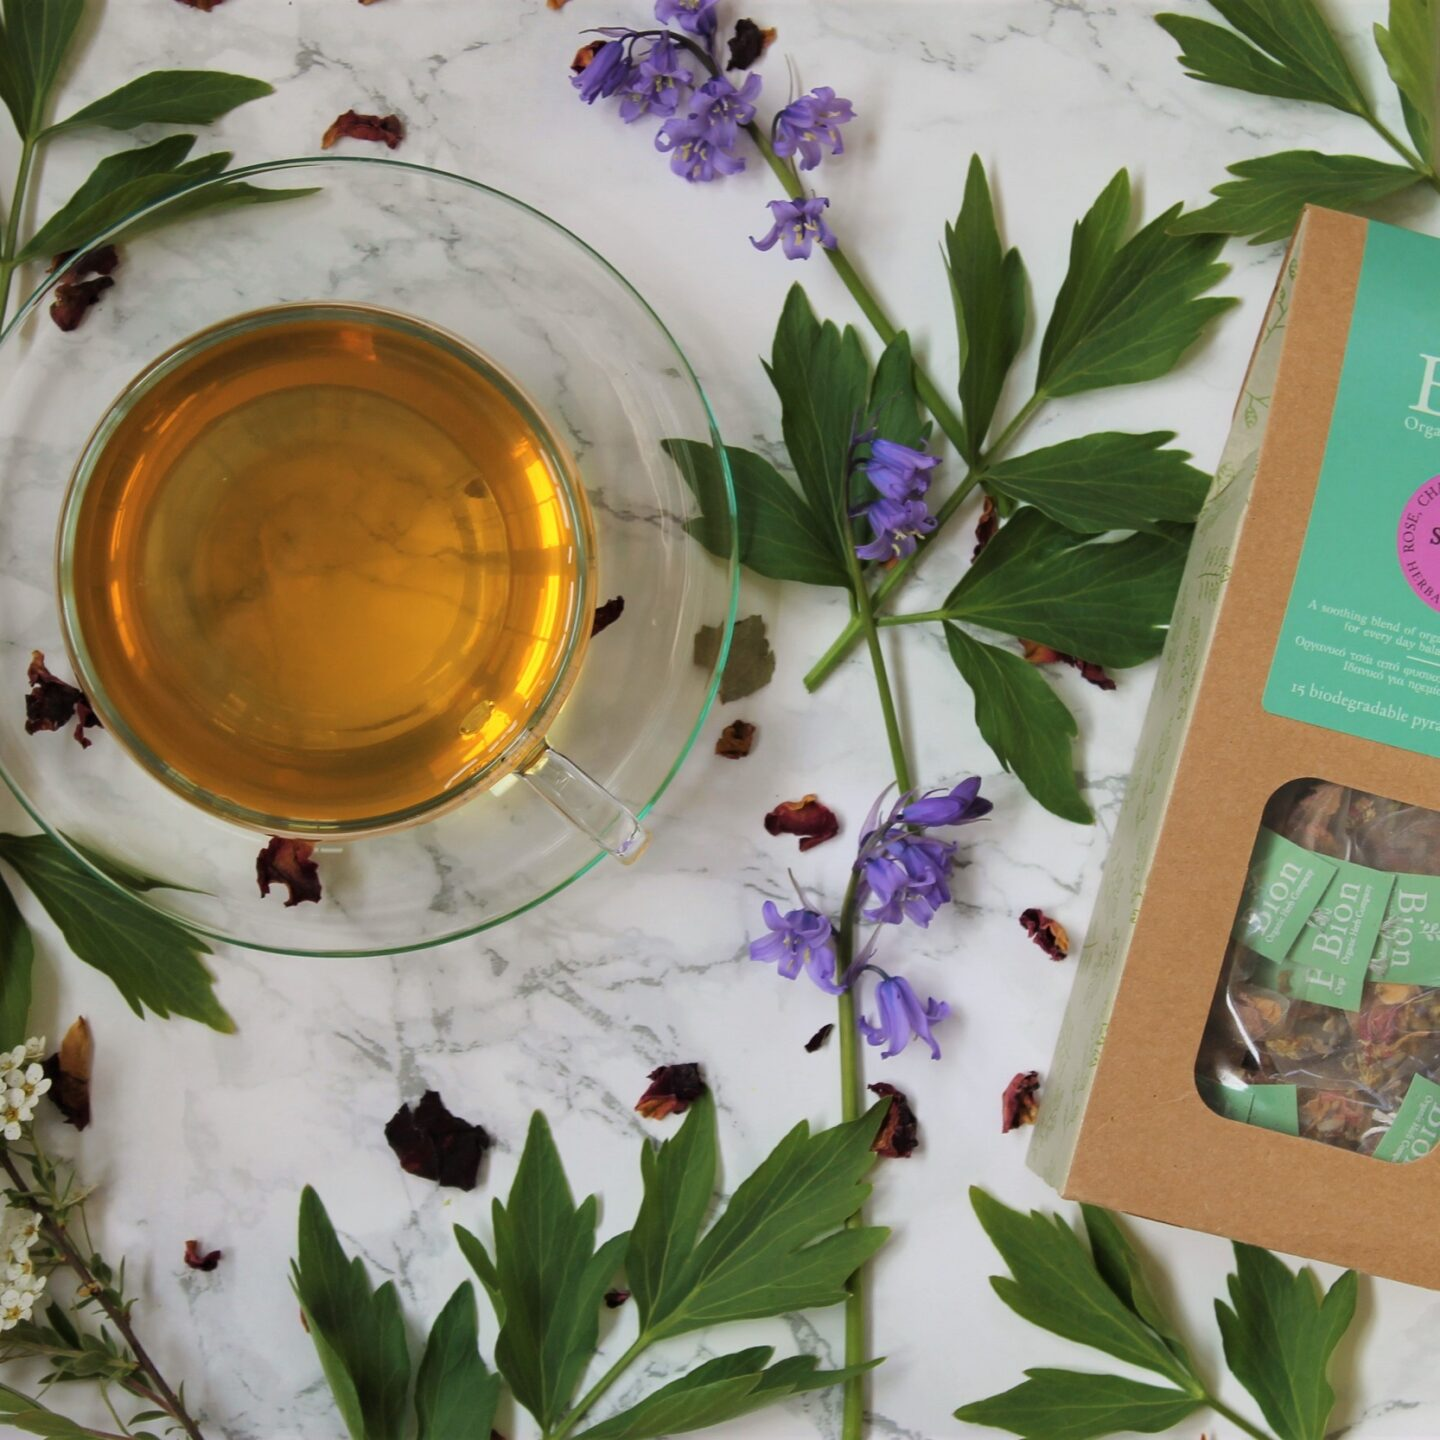 Bion Spring Floral Infusion Tea Review